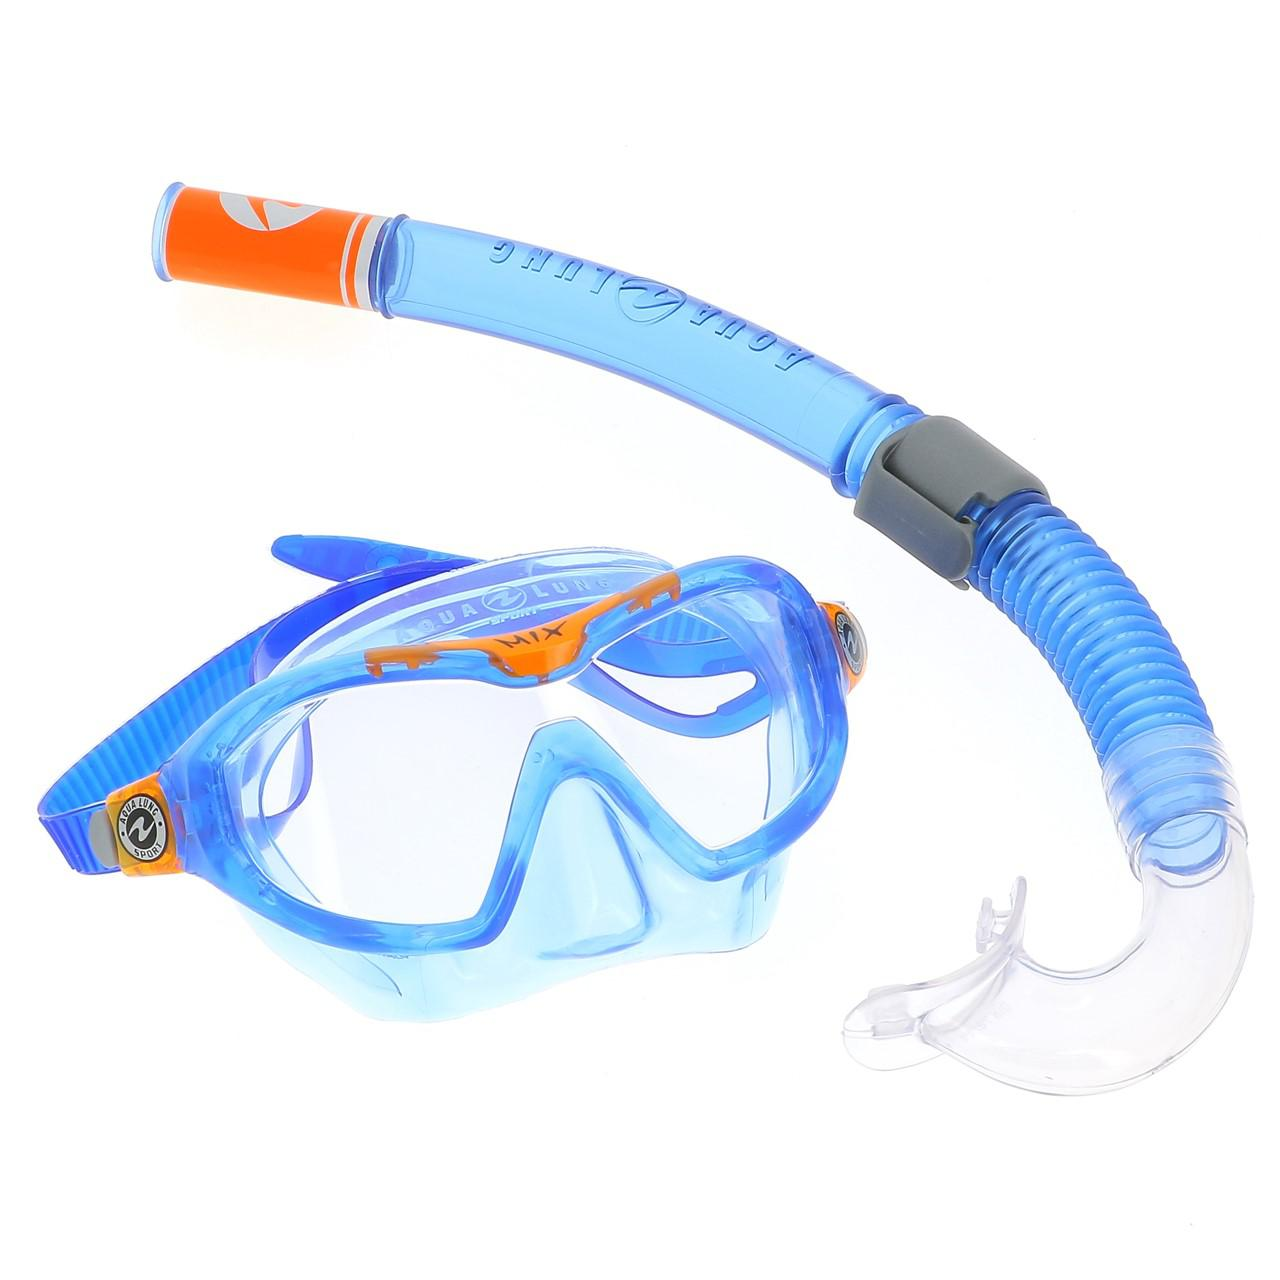 Mask-and-Tubas-Scuba-Dive-Aqualung-Combo-Mix-Blue-Org-Jr-Blue-28601-New